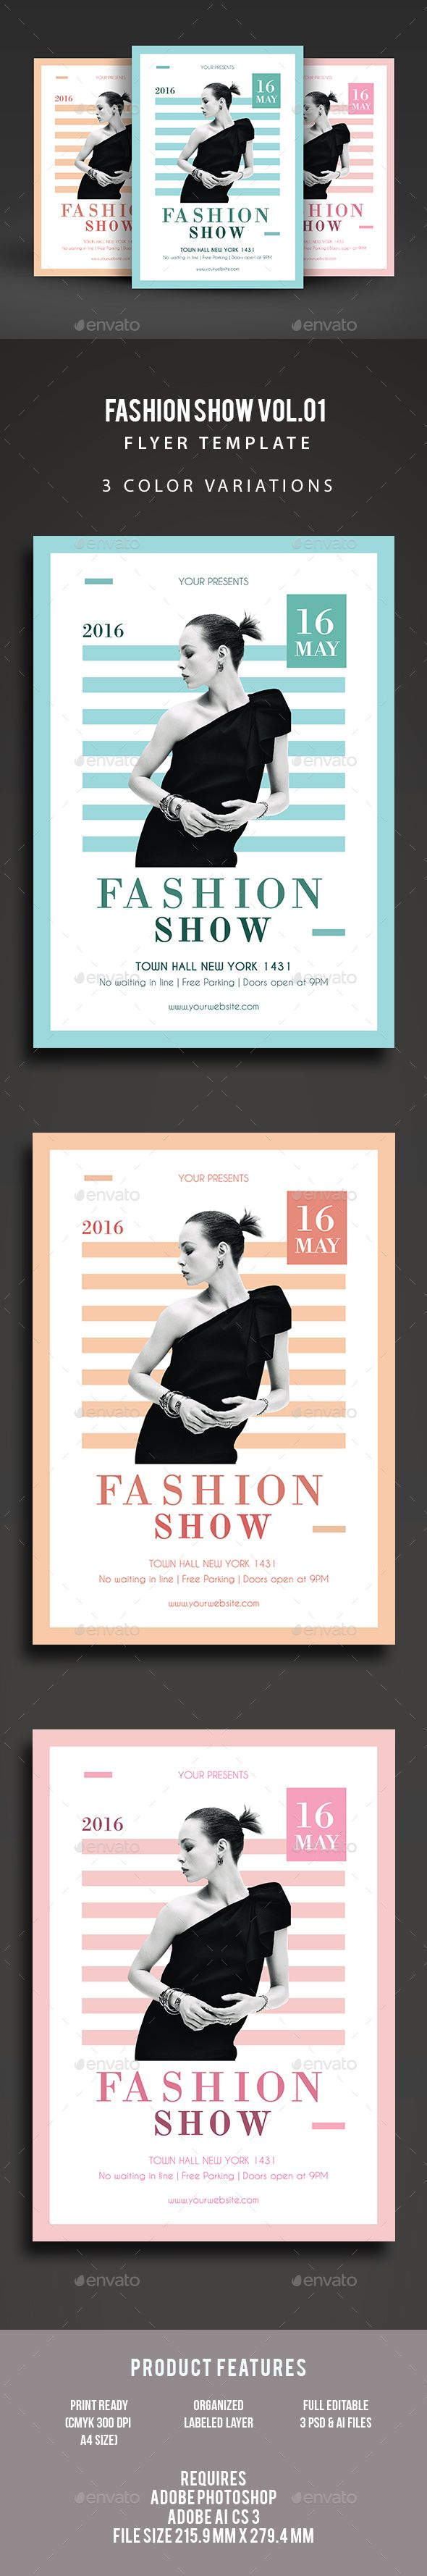 Fashion Show Flyer Template PSD, Vector AI. Download here: graphicriver.net/...